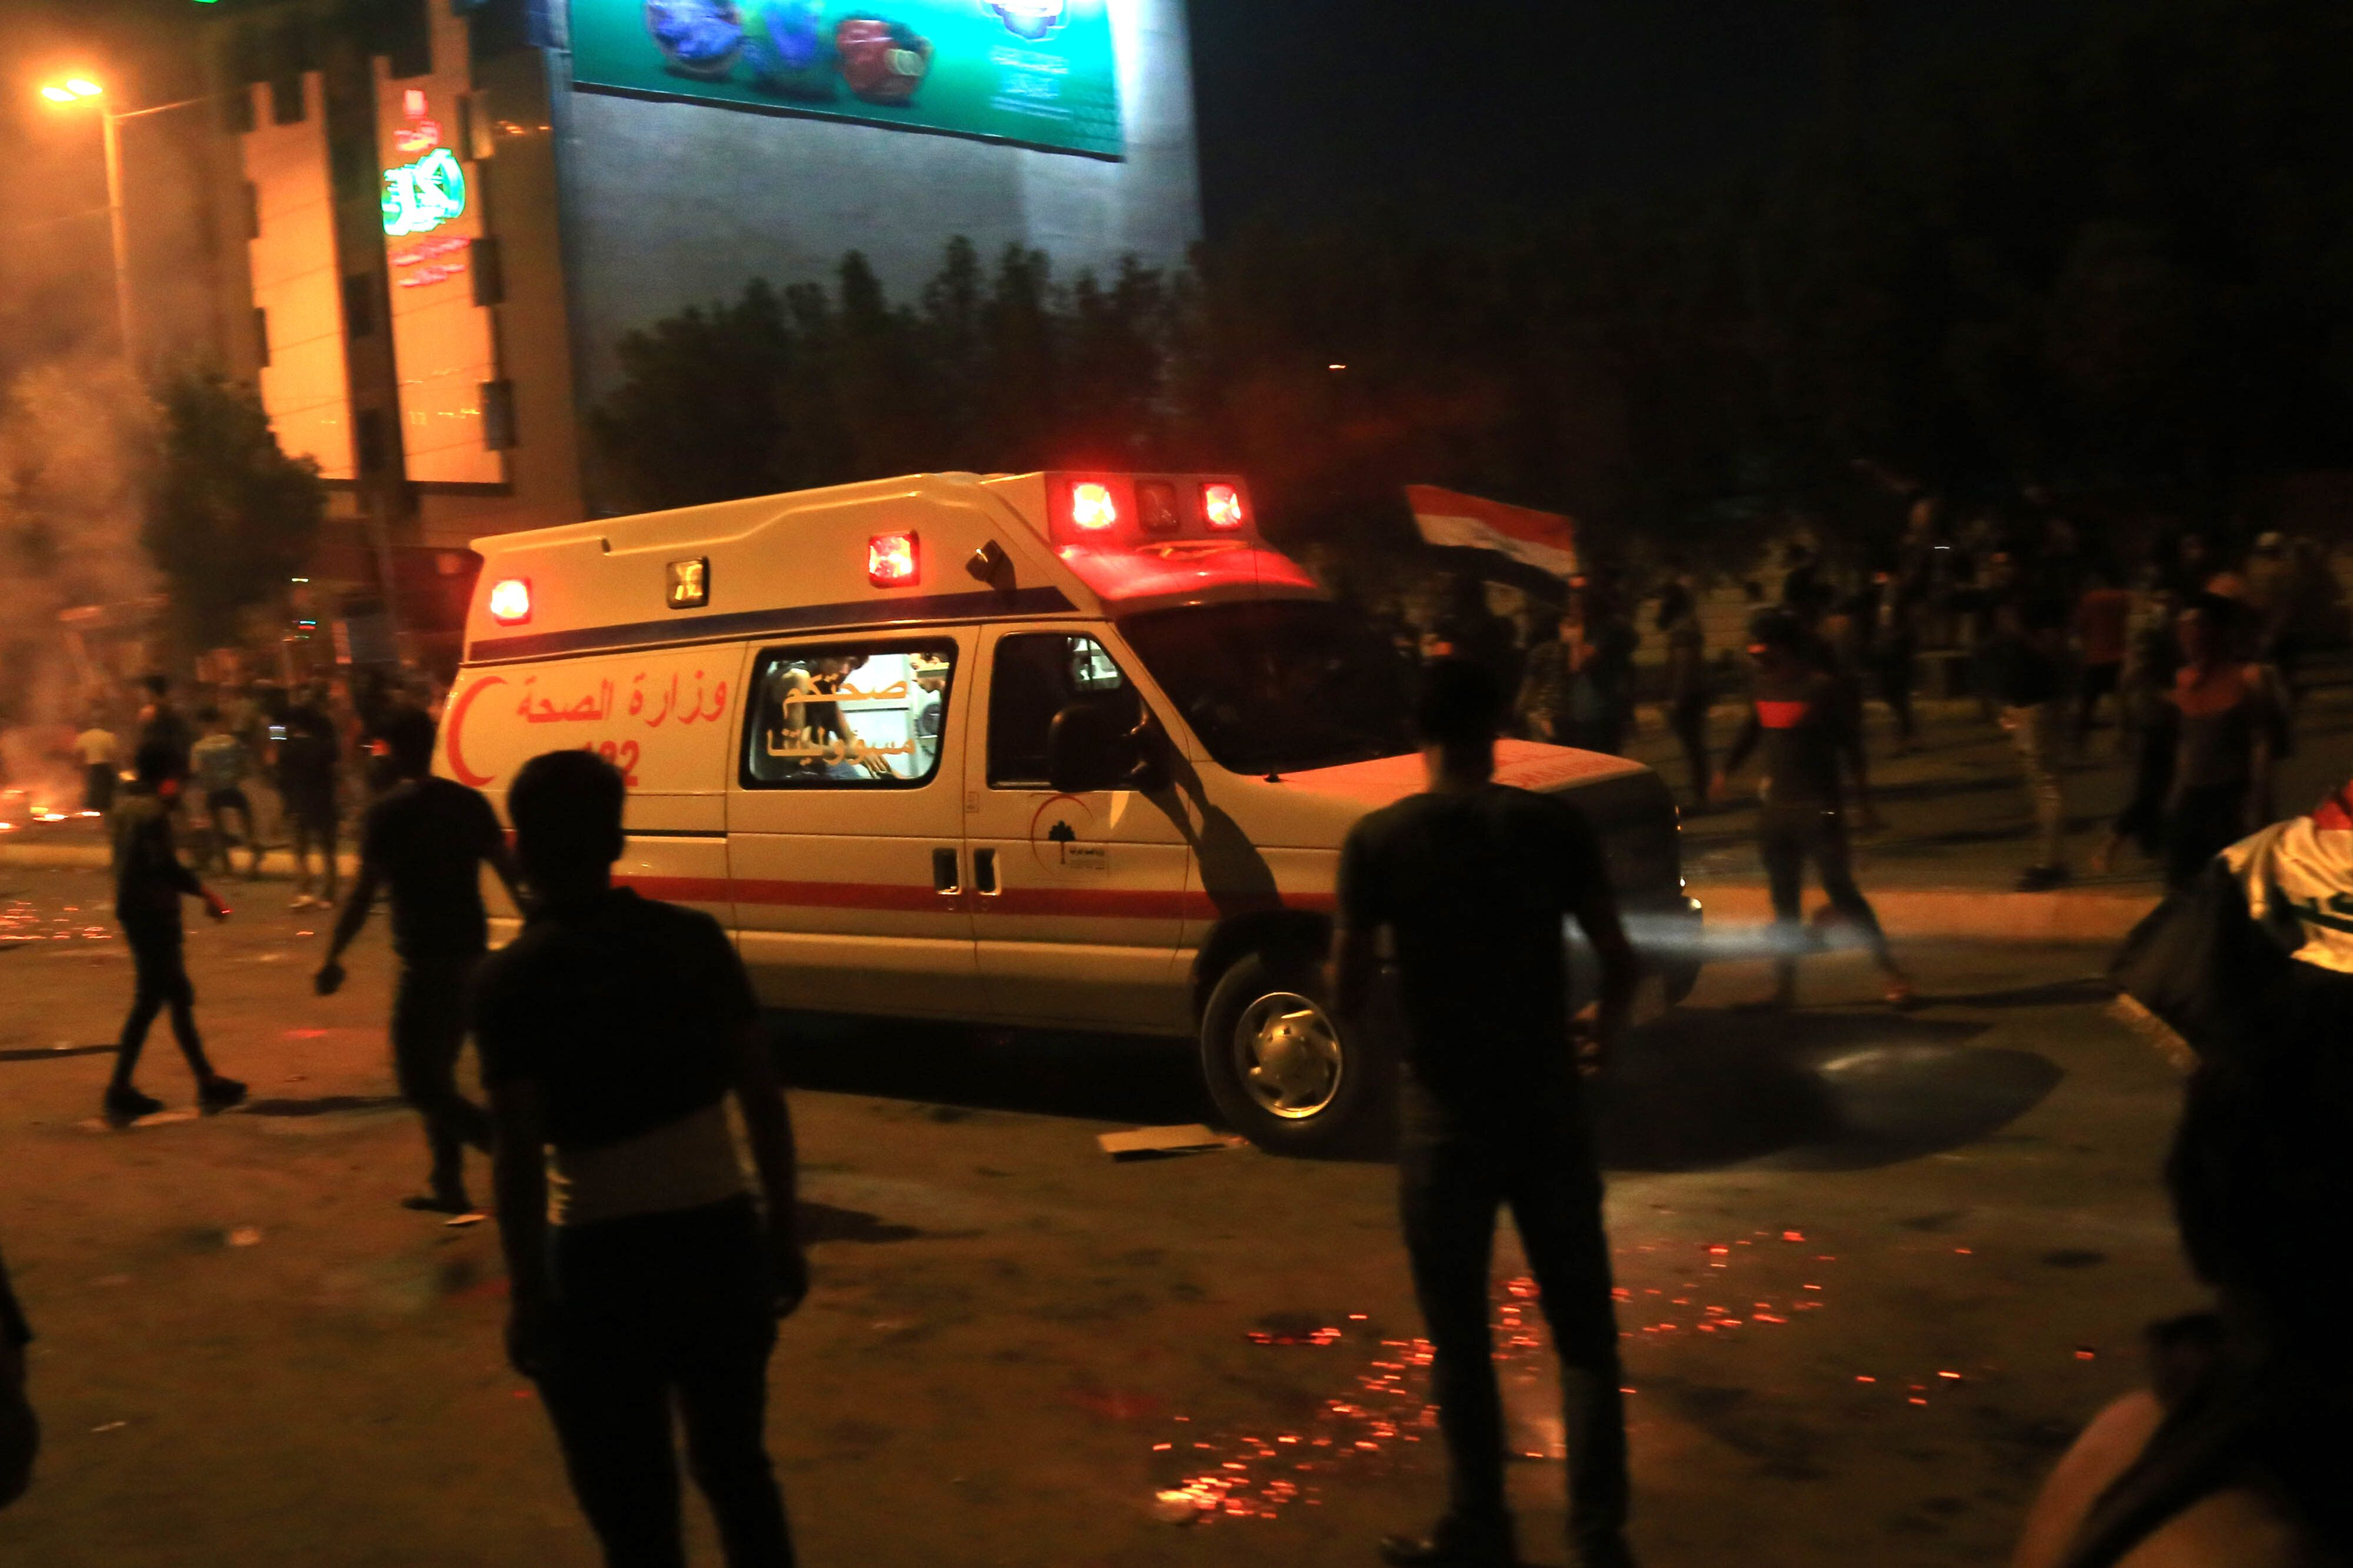 Soldiers were seen beating high school students with batons in two Baghdad districts.